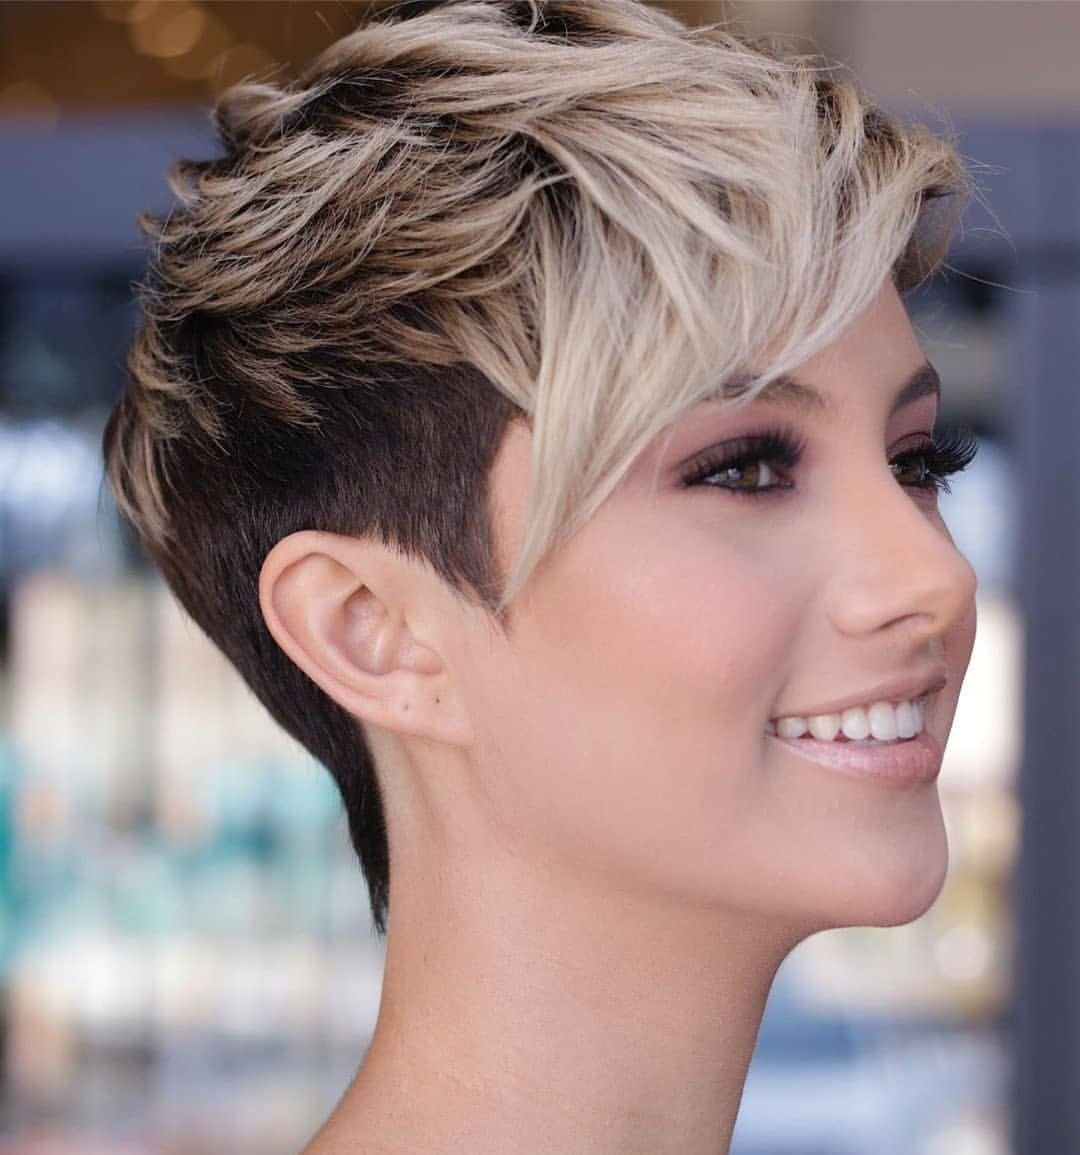 Which Short Haircut Should I Get Her Crochet Edgy Short Hair Stylish Hair Short Hair Styles Pixie